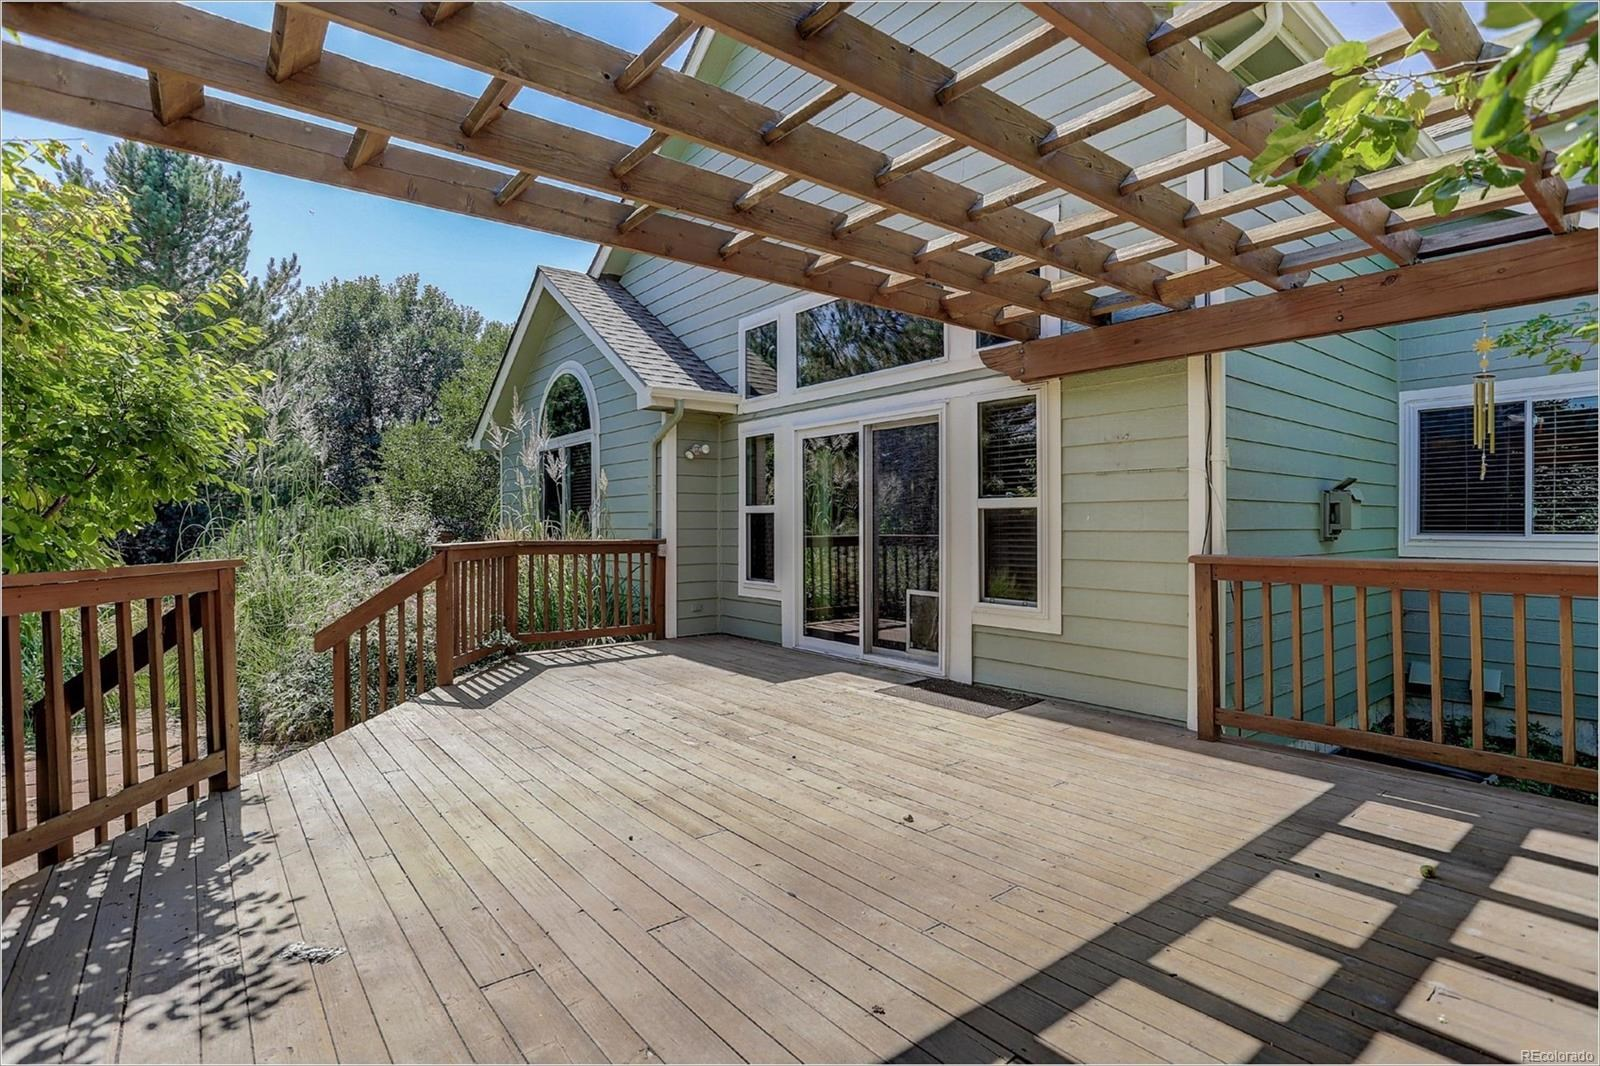 MLS# 8327774 - 33 - 806 W 127th Court, Westminster, CO 80234